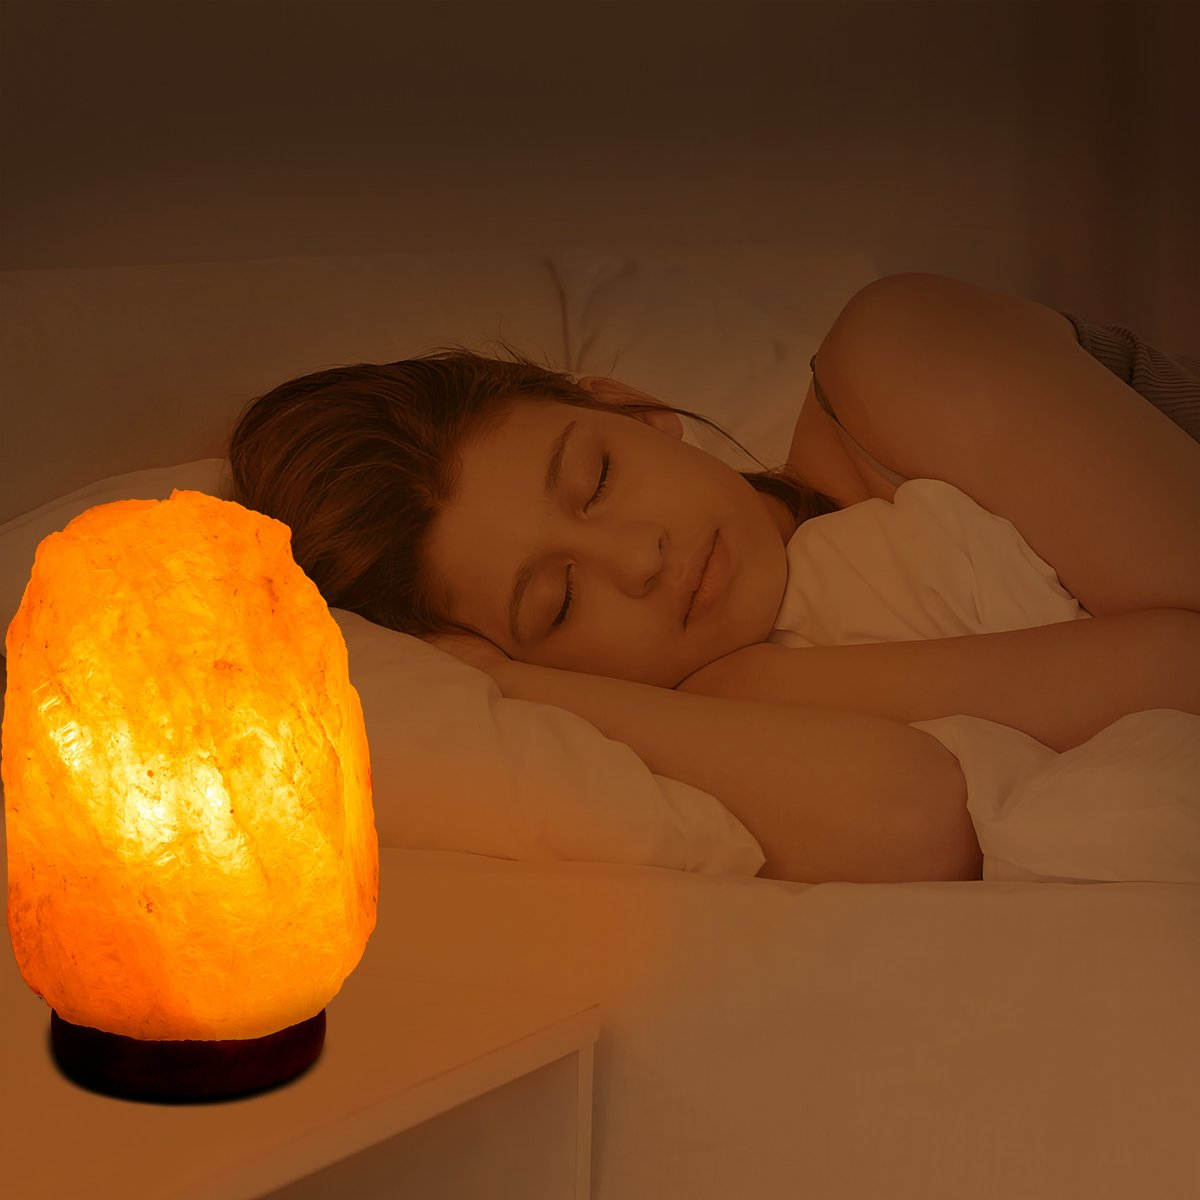 Haraqi Salt lamp Himalayan Salt Rock Lamps Hand Carved Natural Crystal Salt lamp with Wood Base,Includes Dimmer Switch and UL-approved Bulb